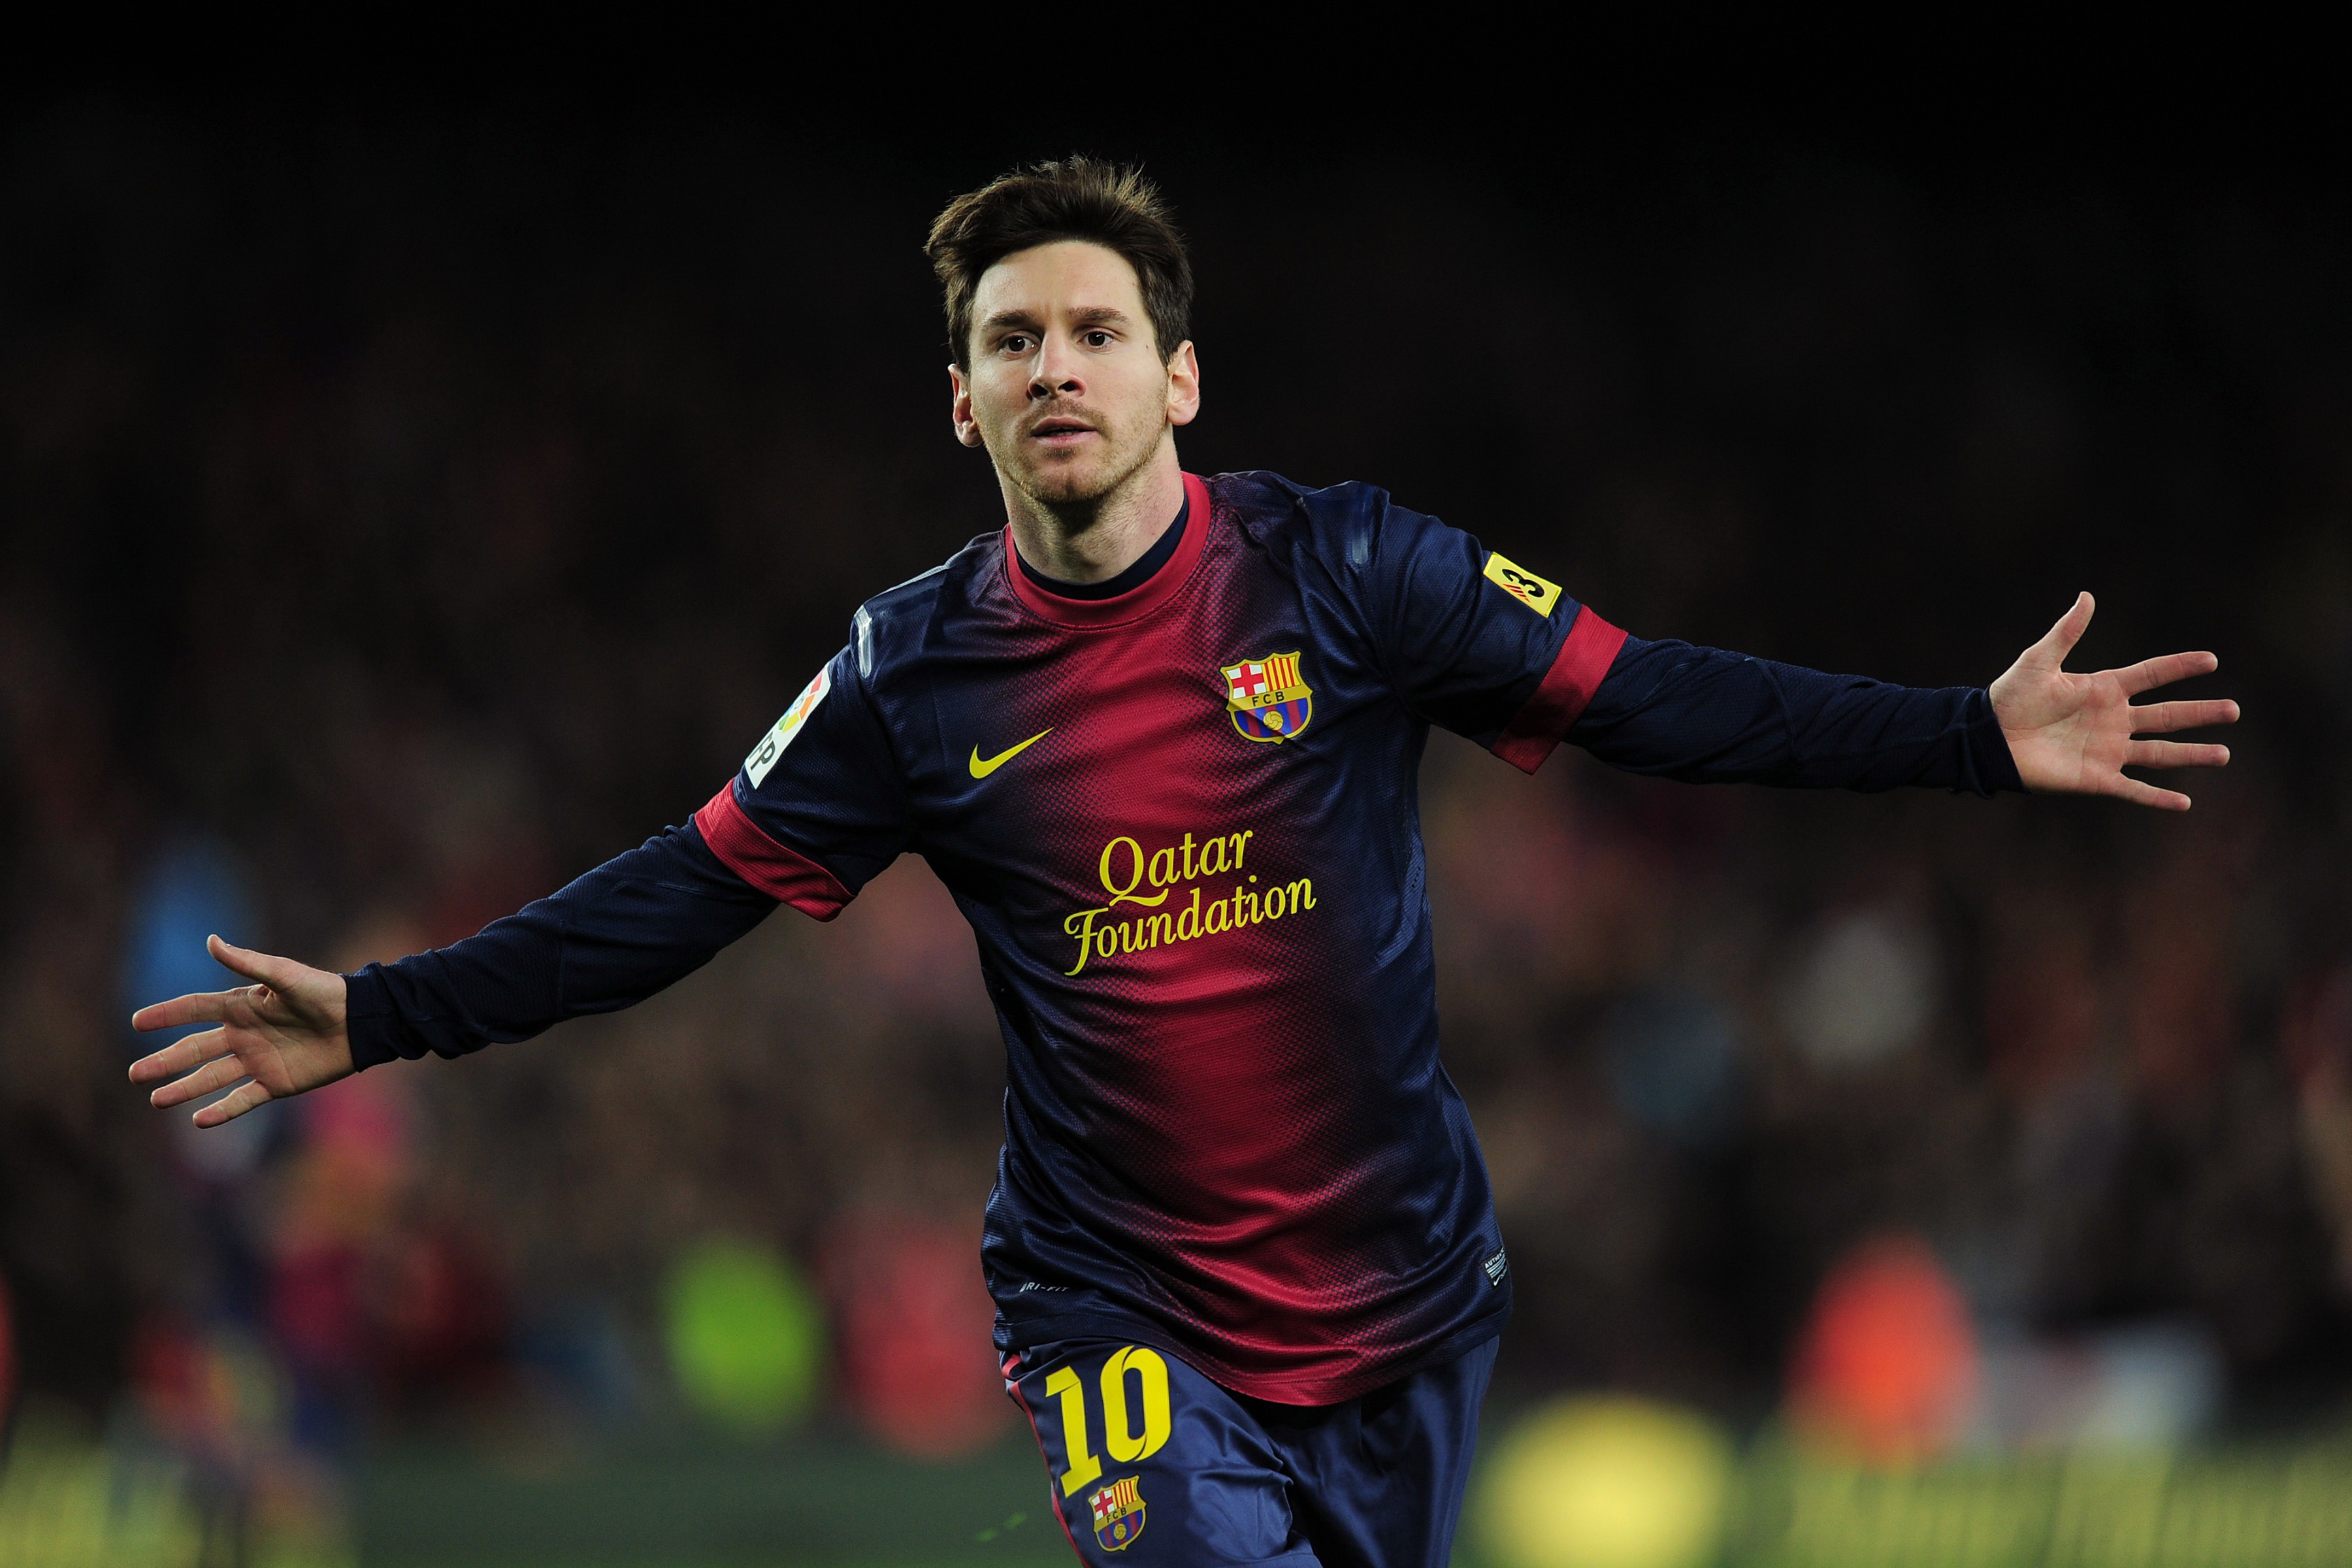 messi barcelona fc lionel messi soccer player best image of messi fc 3600x2400